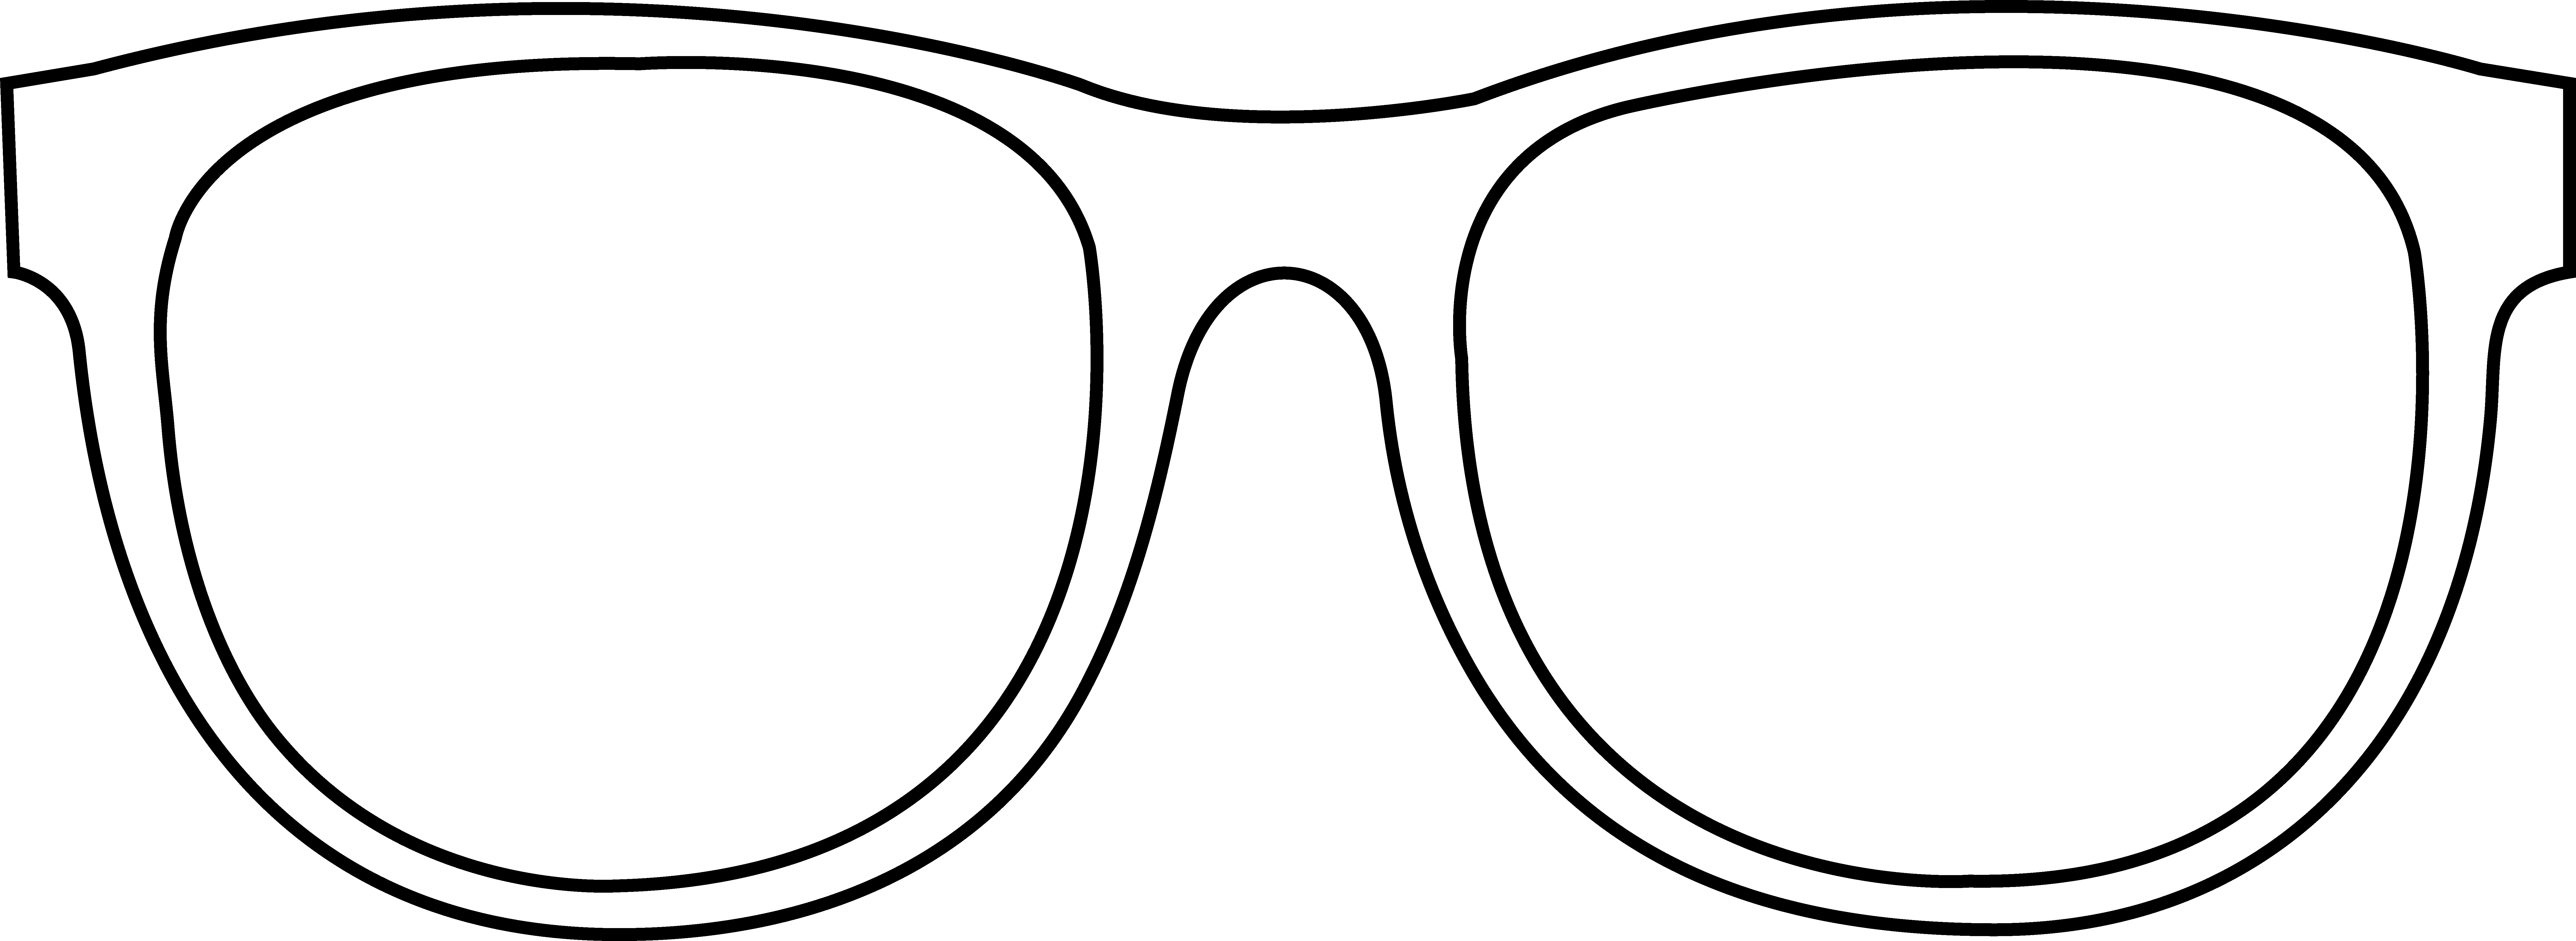 Line Drawing Glasses : Sunglasses clipart black and white panda free